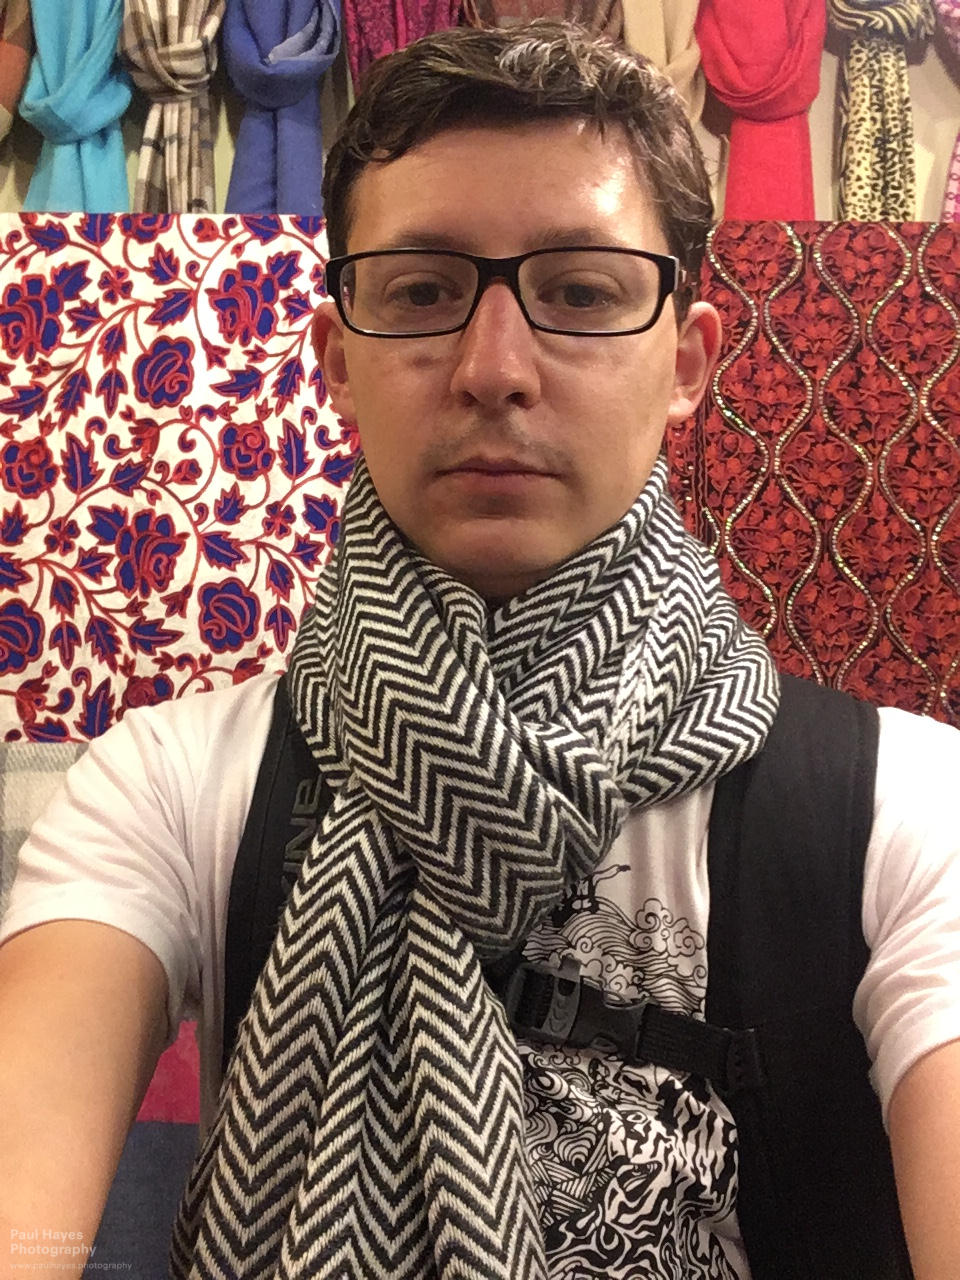 Paul trying on scarves